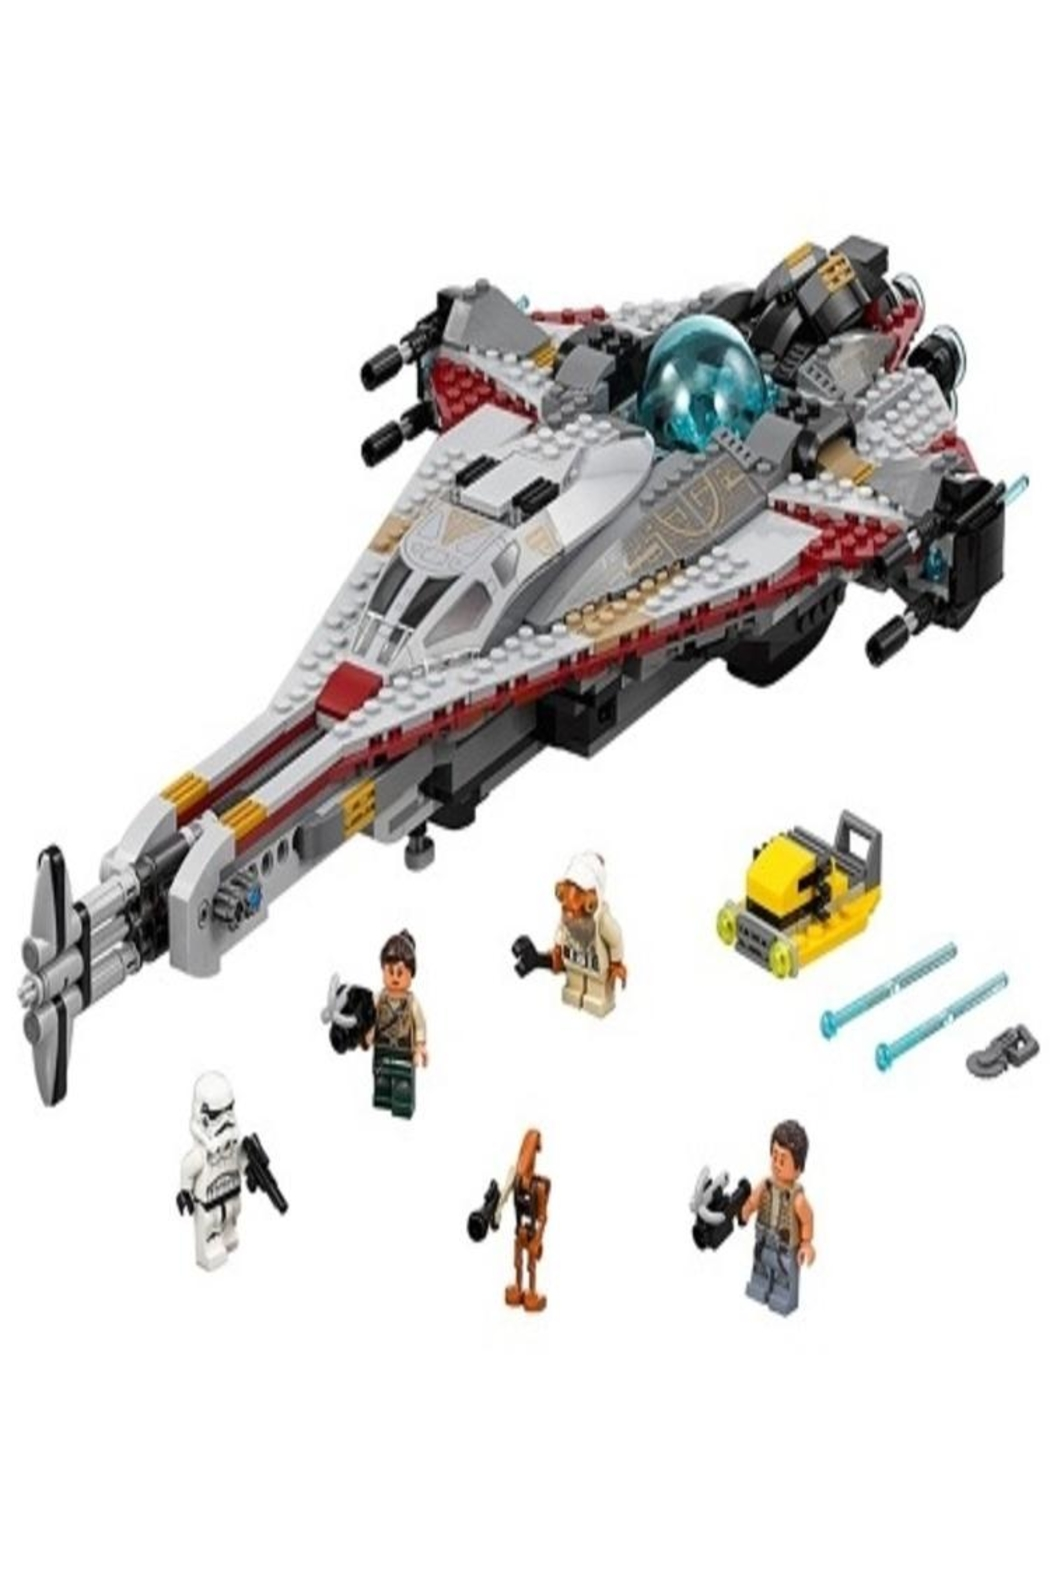 LEGO Building Toy - Main Image